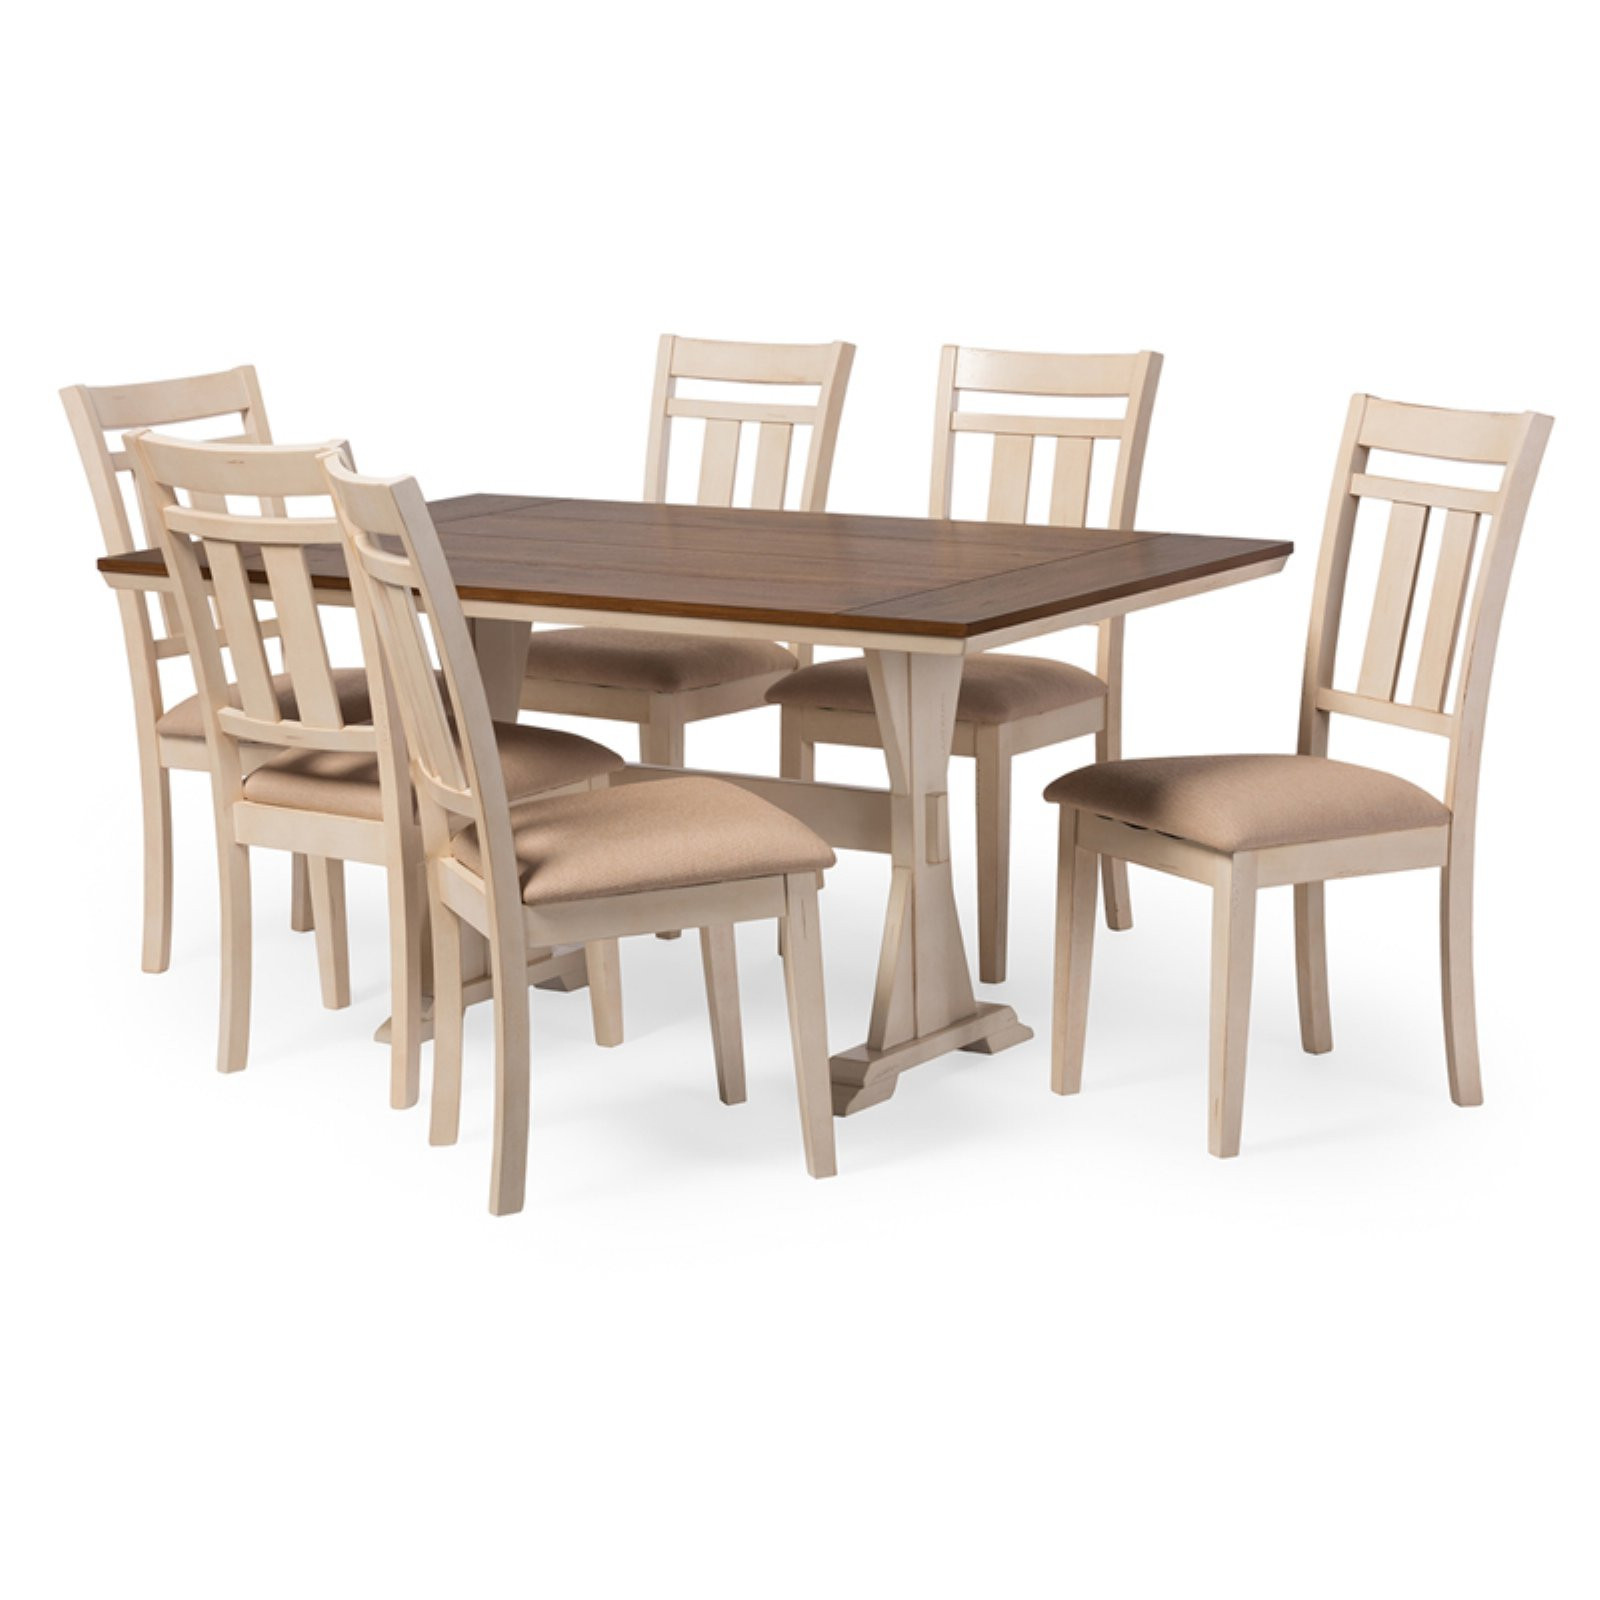 Baxton Studio Roseberry Shabby Chic 7 Piece Dining Table Set